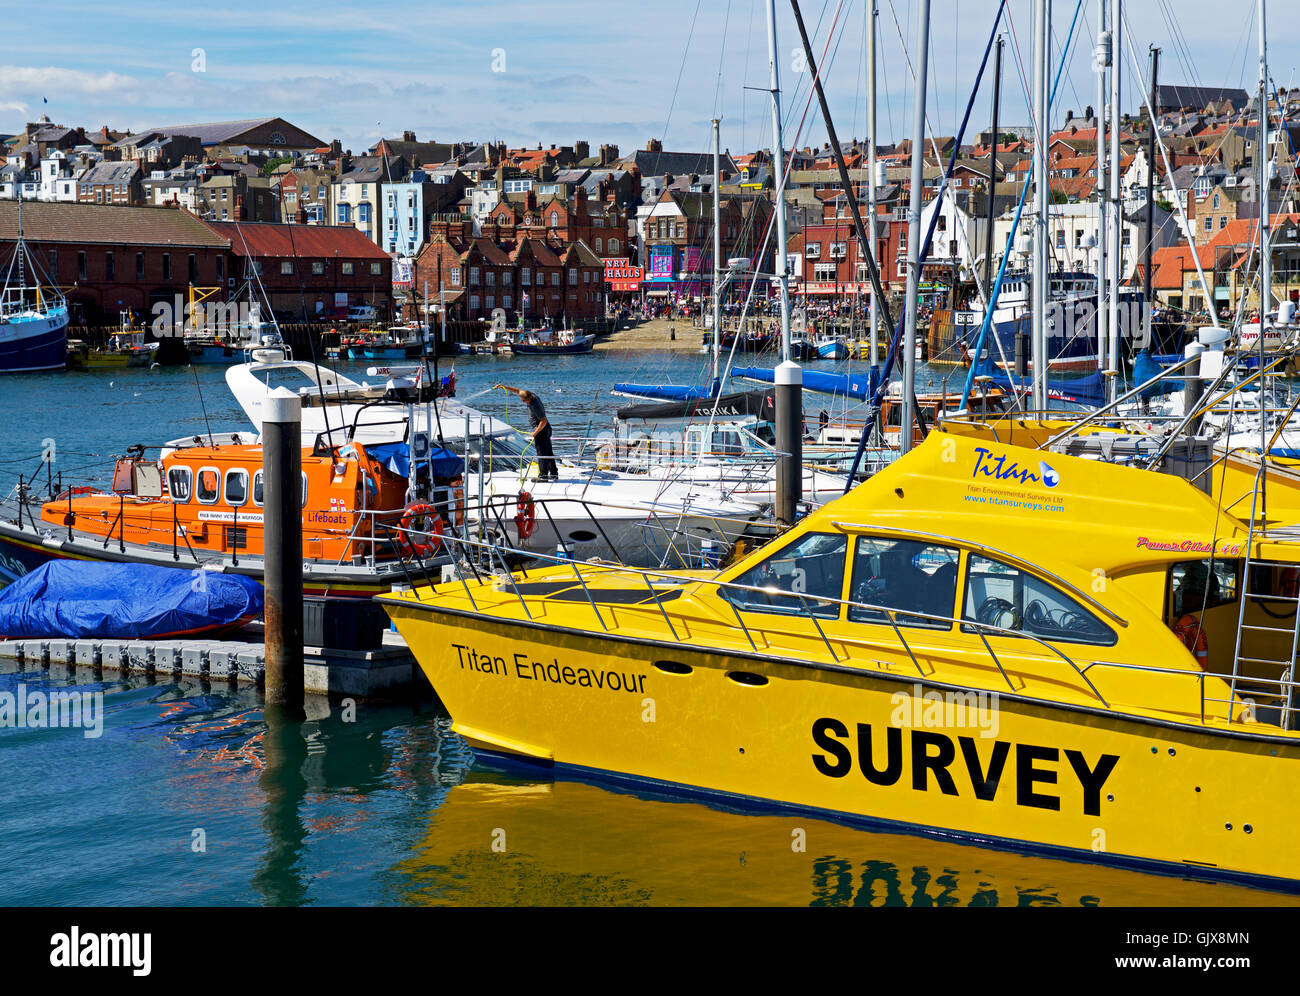 Titan Endeavour Survey boat, moored in the marina, Scarborough harbour, North Yorkshire, England UK - Stock Image